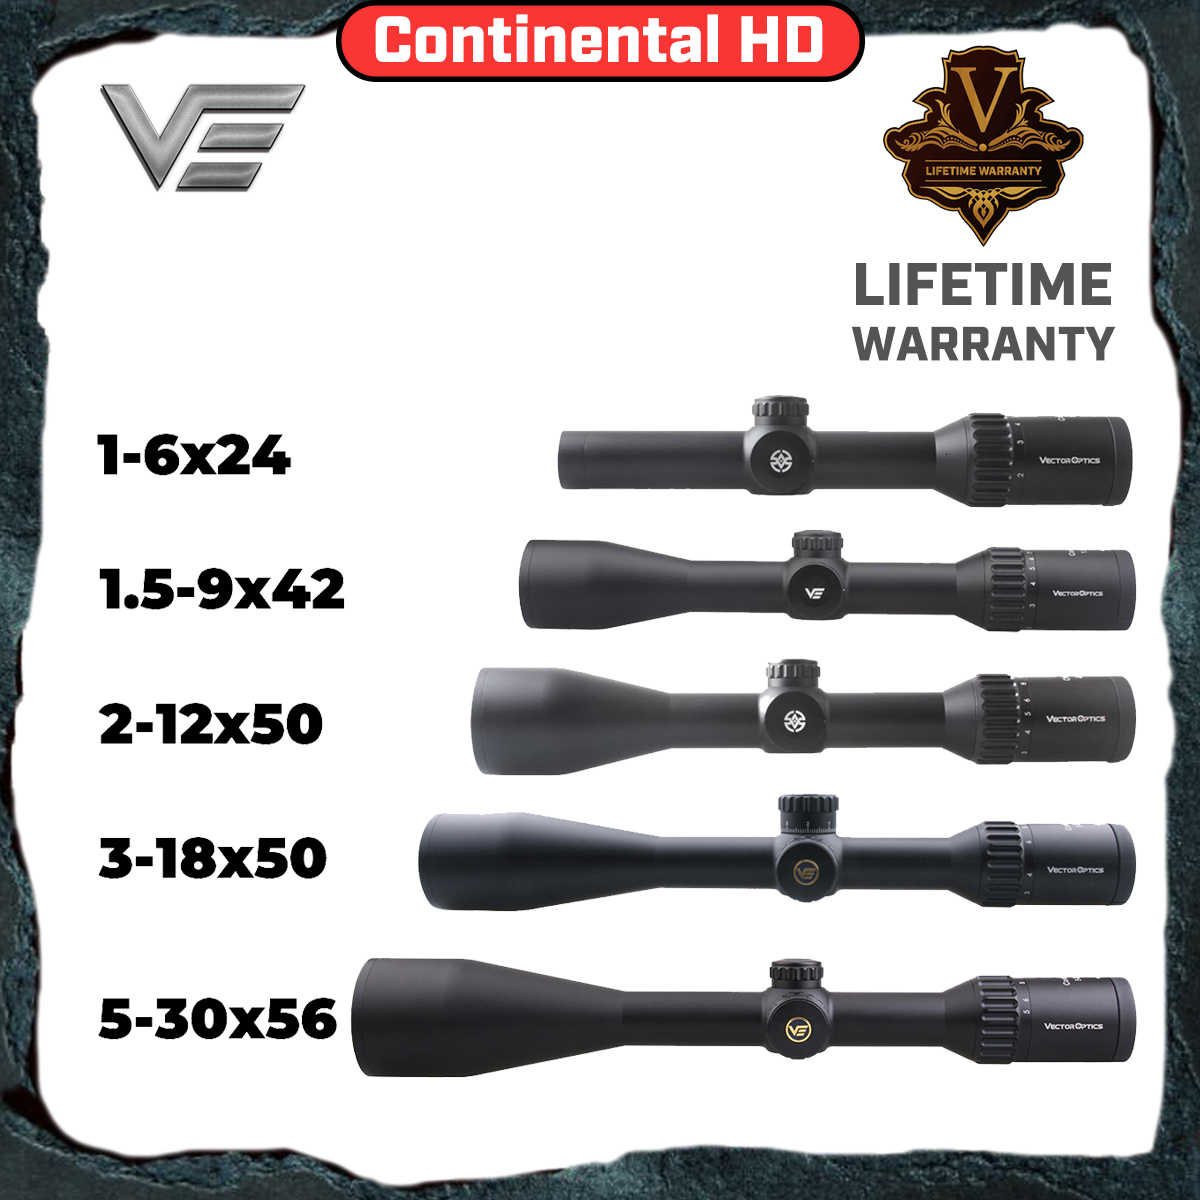 Óptica do vetor continental hd riflescope superior alemão sys rifle scope para caça tática 1-6x24 2-12x50 1.5-9x42 3-18x50 5-30x56